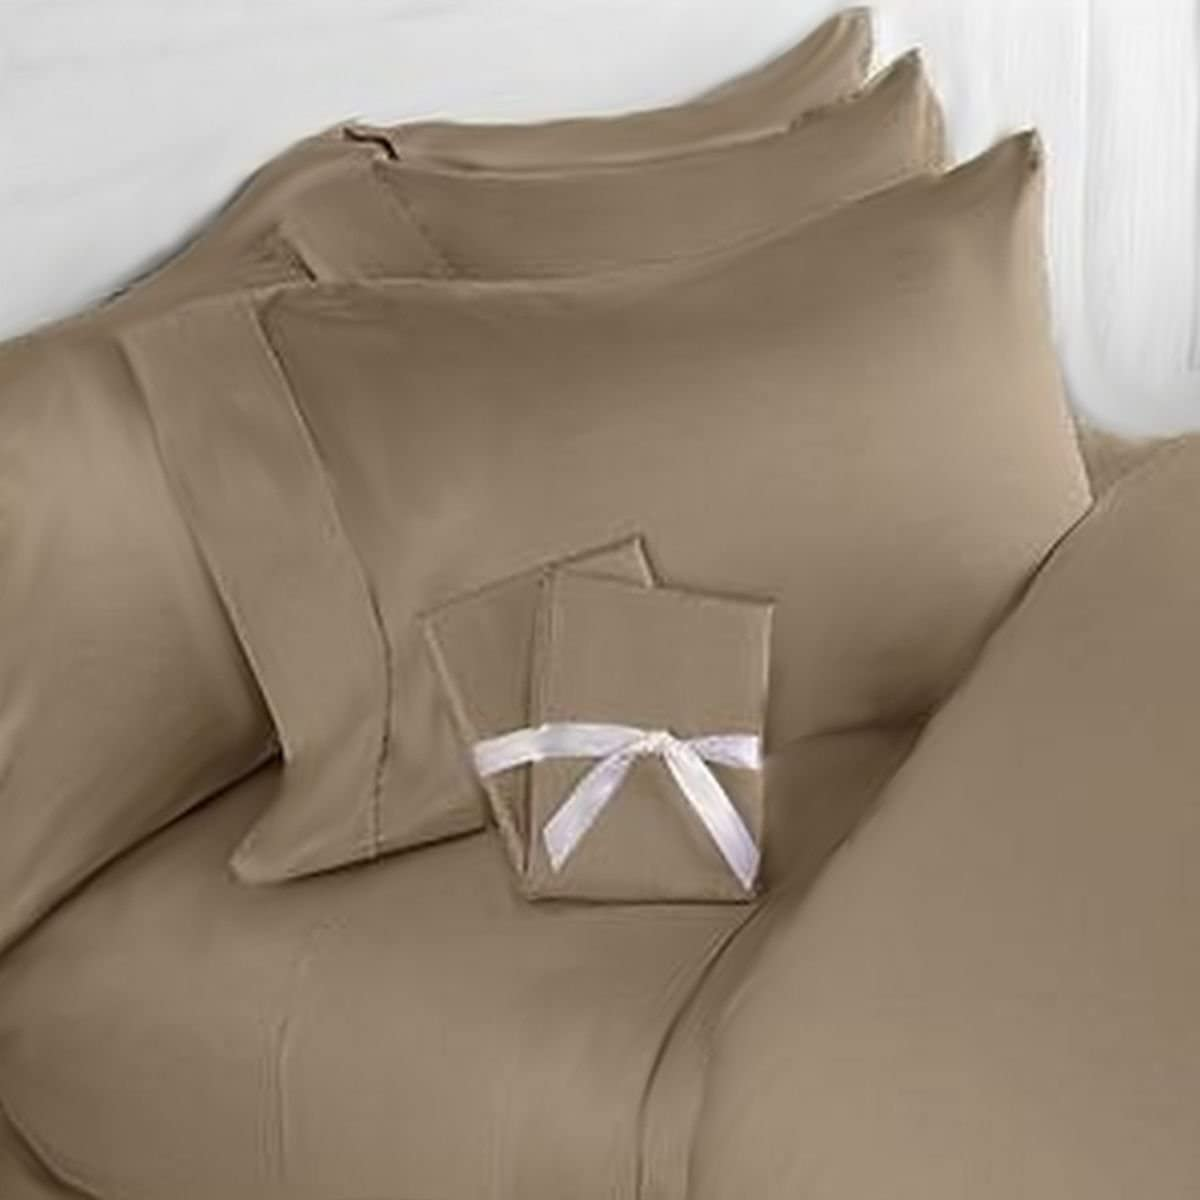 Elegant Comfort 3 Piece 1500 Thread Count Luxury Ultra Soft Egyptian Quality Coziest Duvet Cover Set, King/California King, Taupe